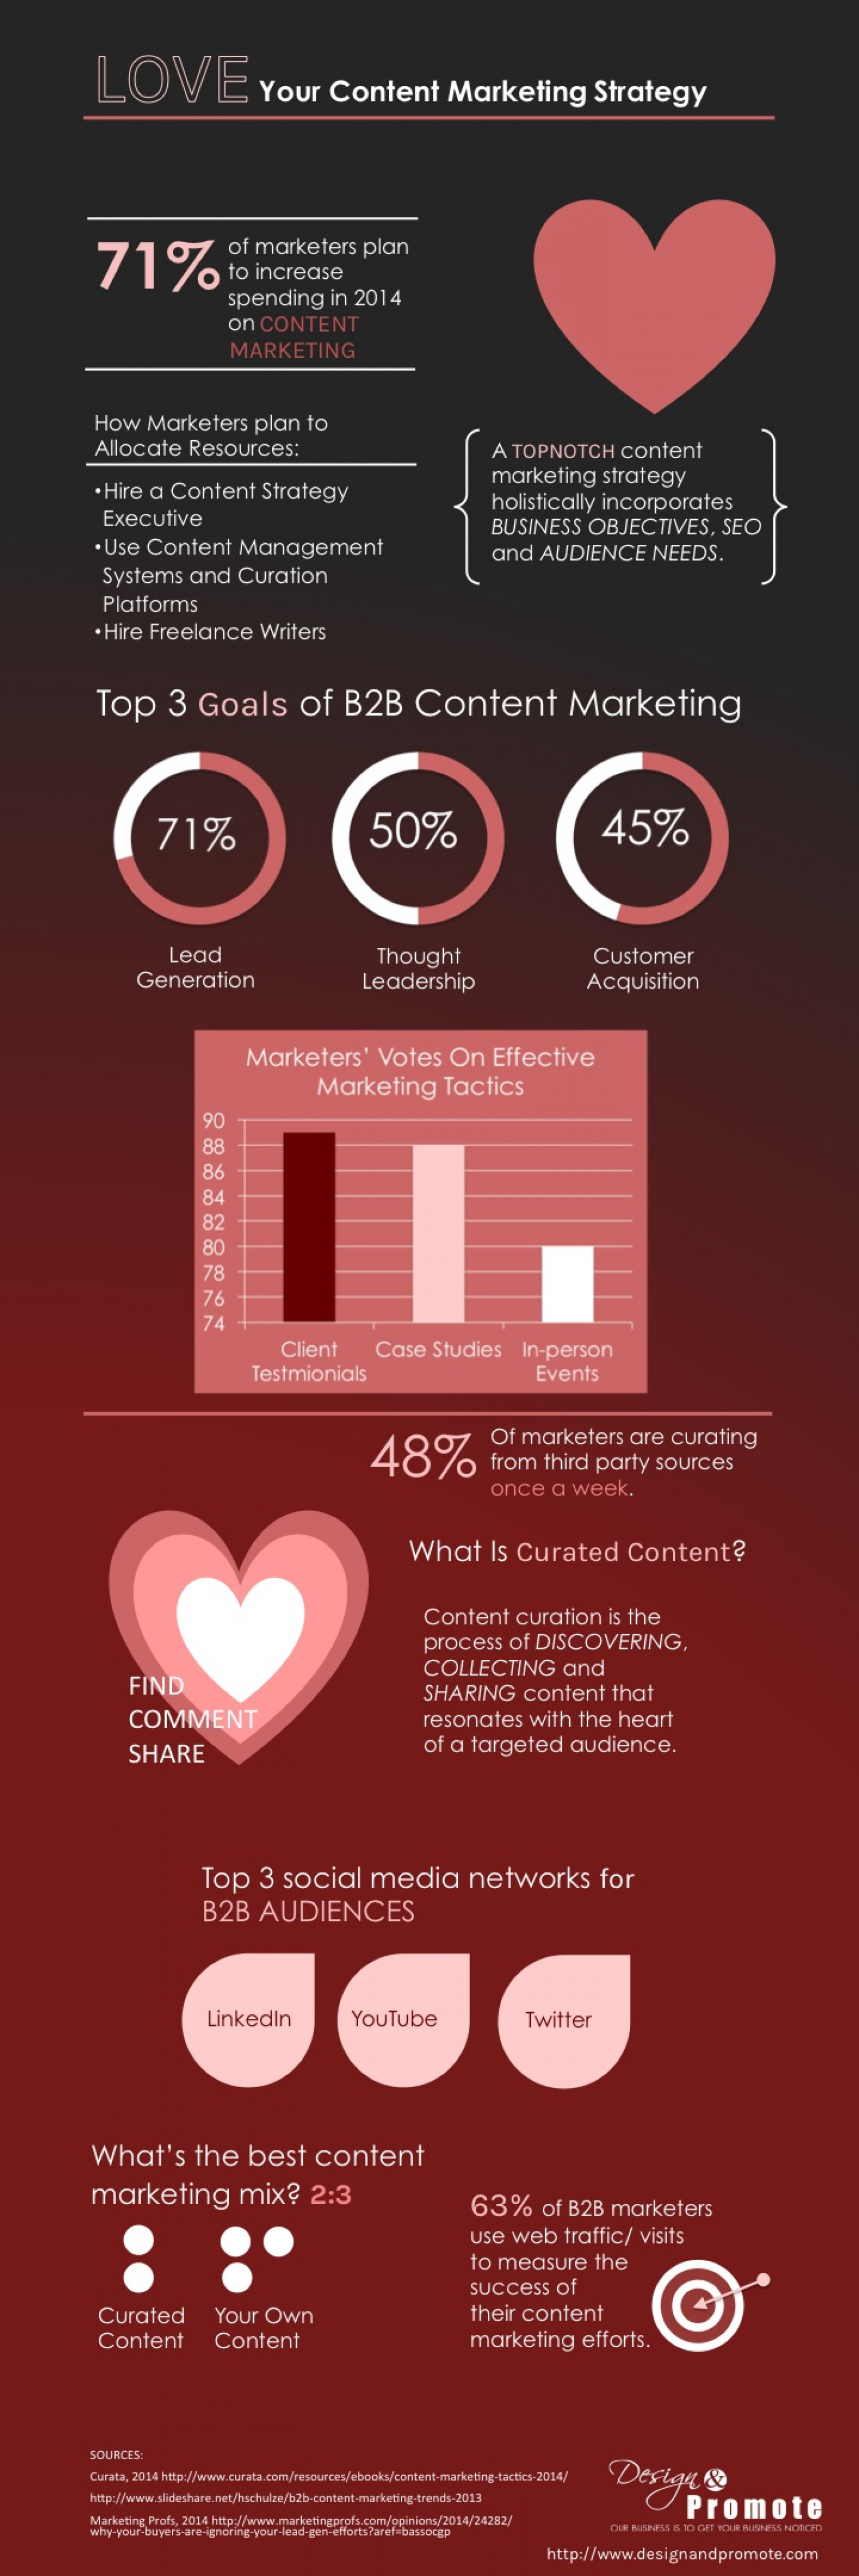 Love Your Content Marketing Strategy  Infographic